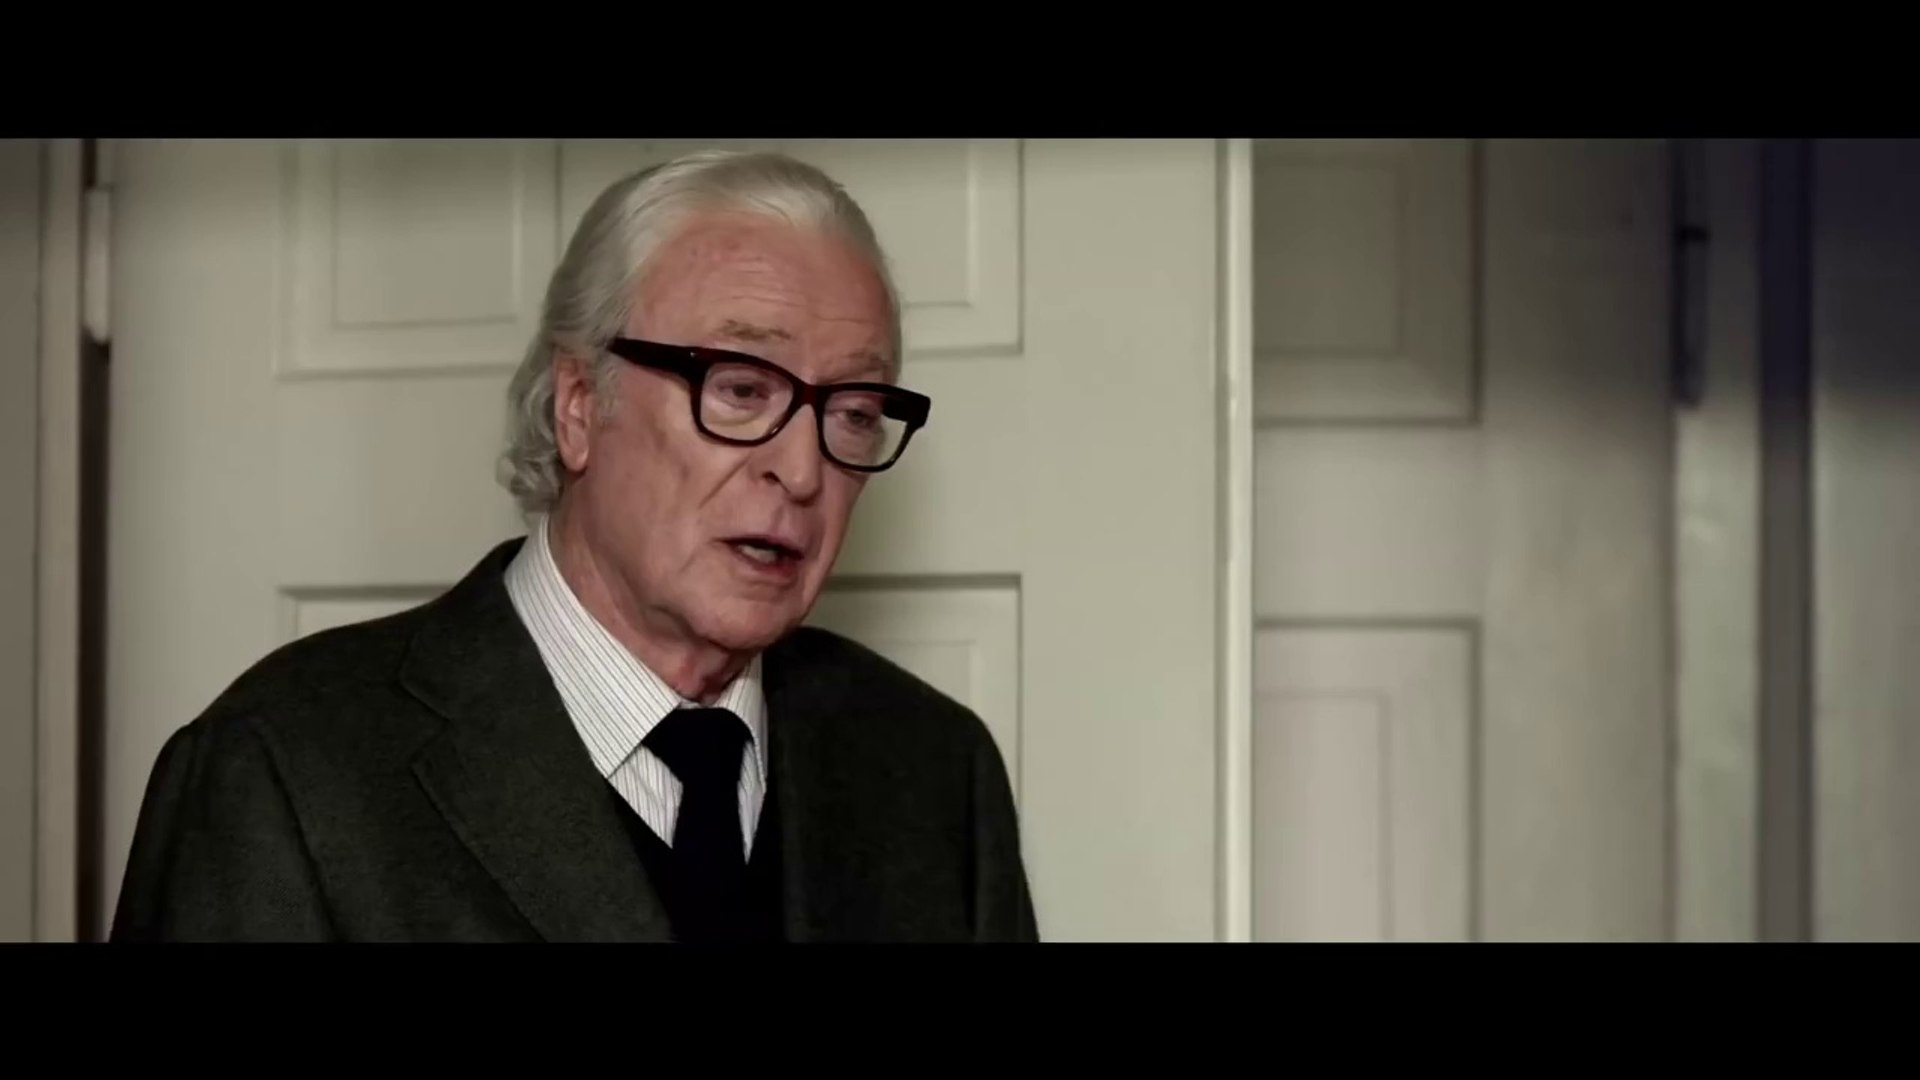 Youth | Official Trailer 1 2015 | Michael Caine, Harvey Keitel Drama | Movie HD